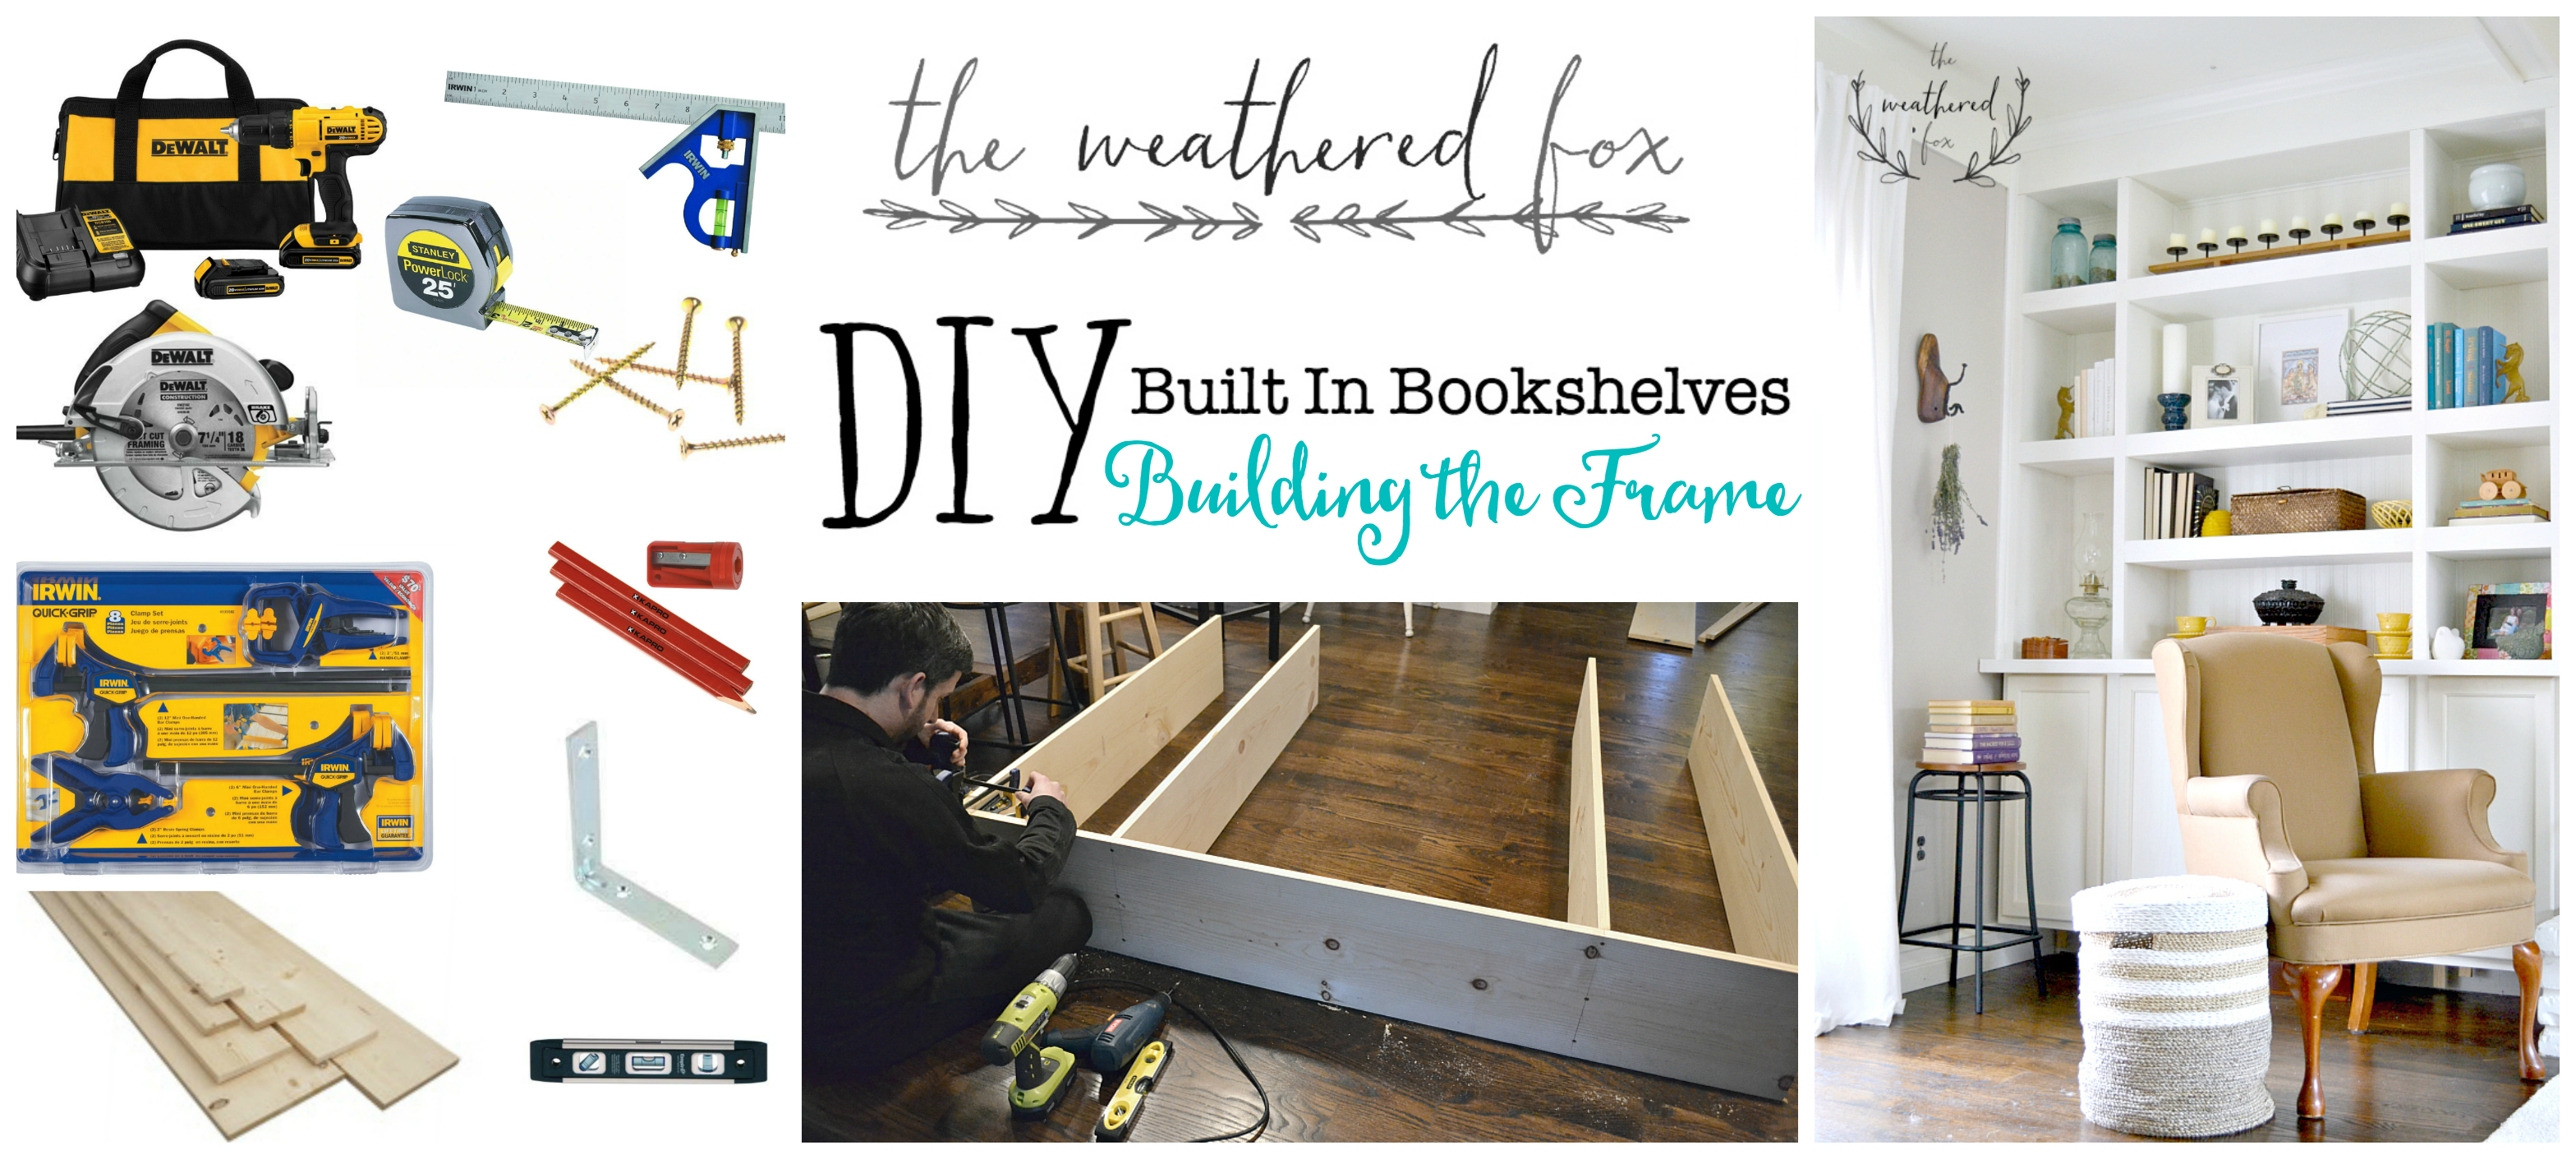 Fireplace Built Ins Part 2: Building the Frame